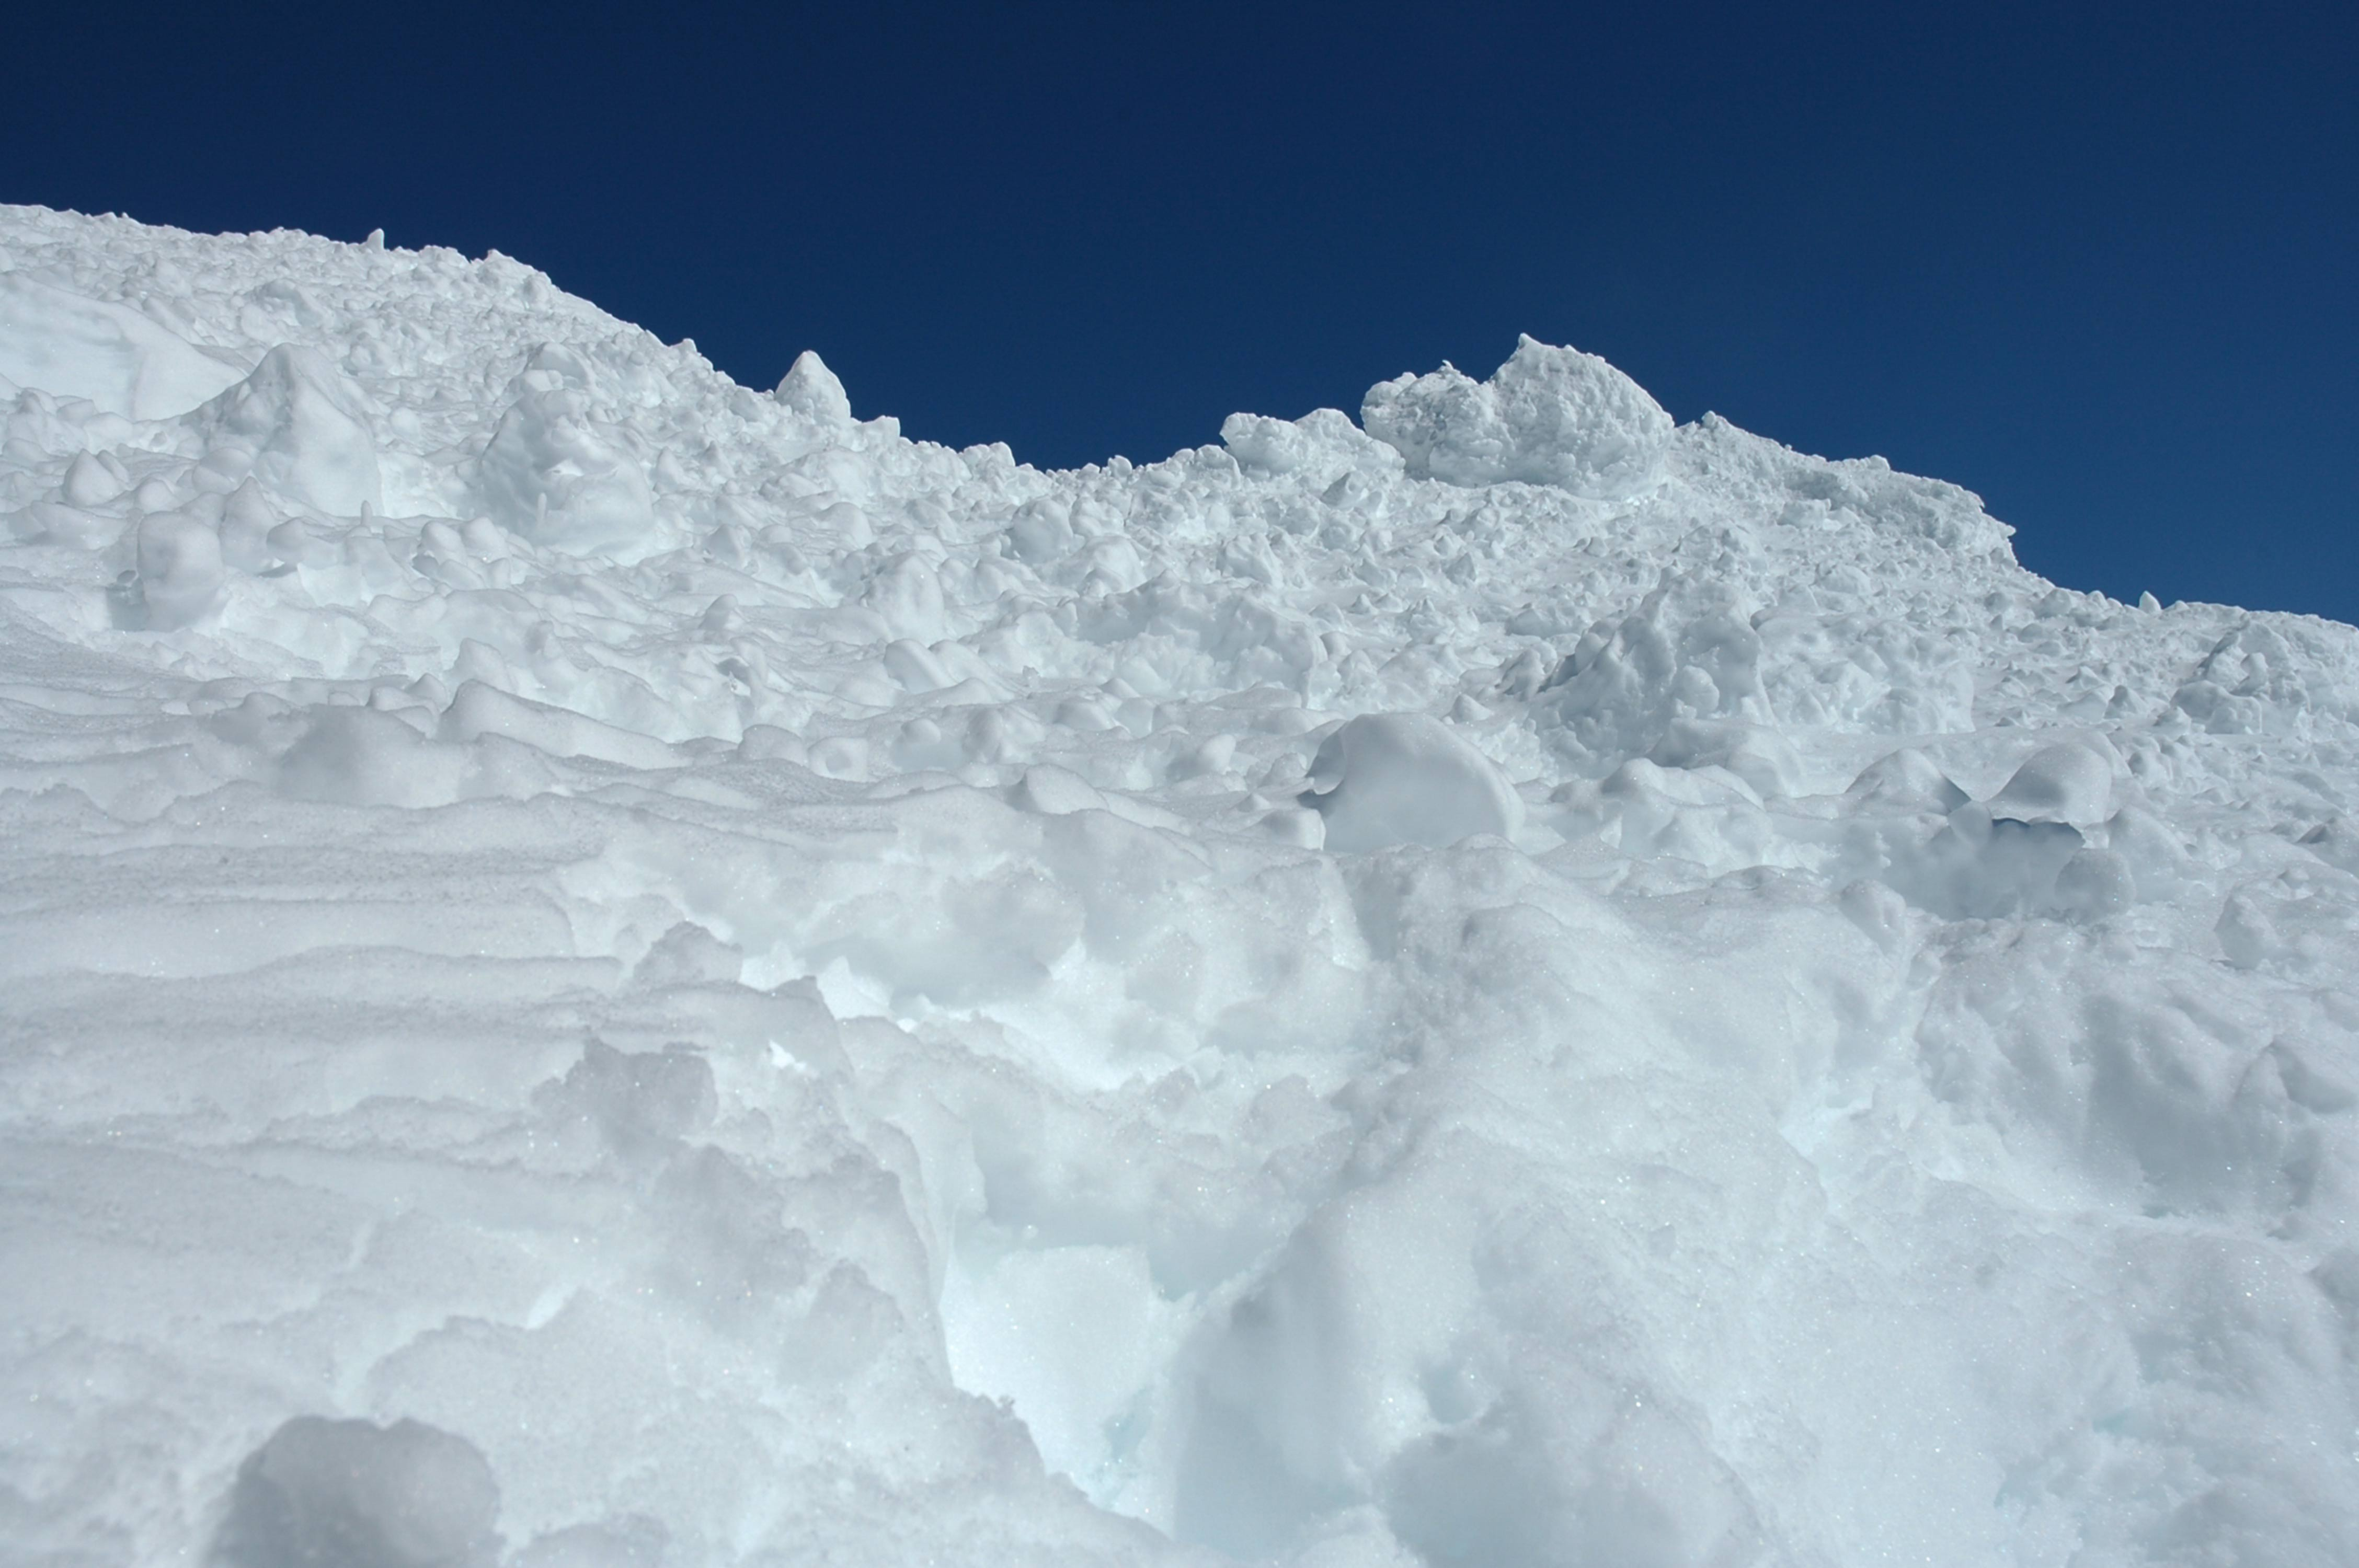 Pile of White Snow on a Blue Sky Pile of White Snow on a Blue Sky